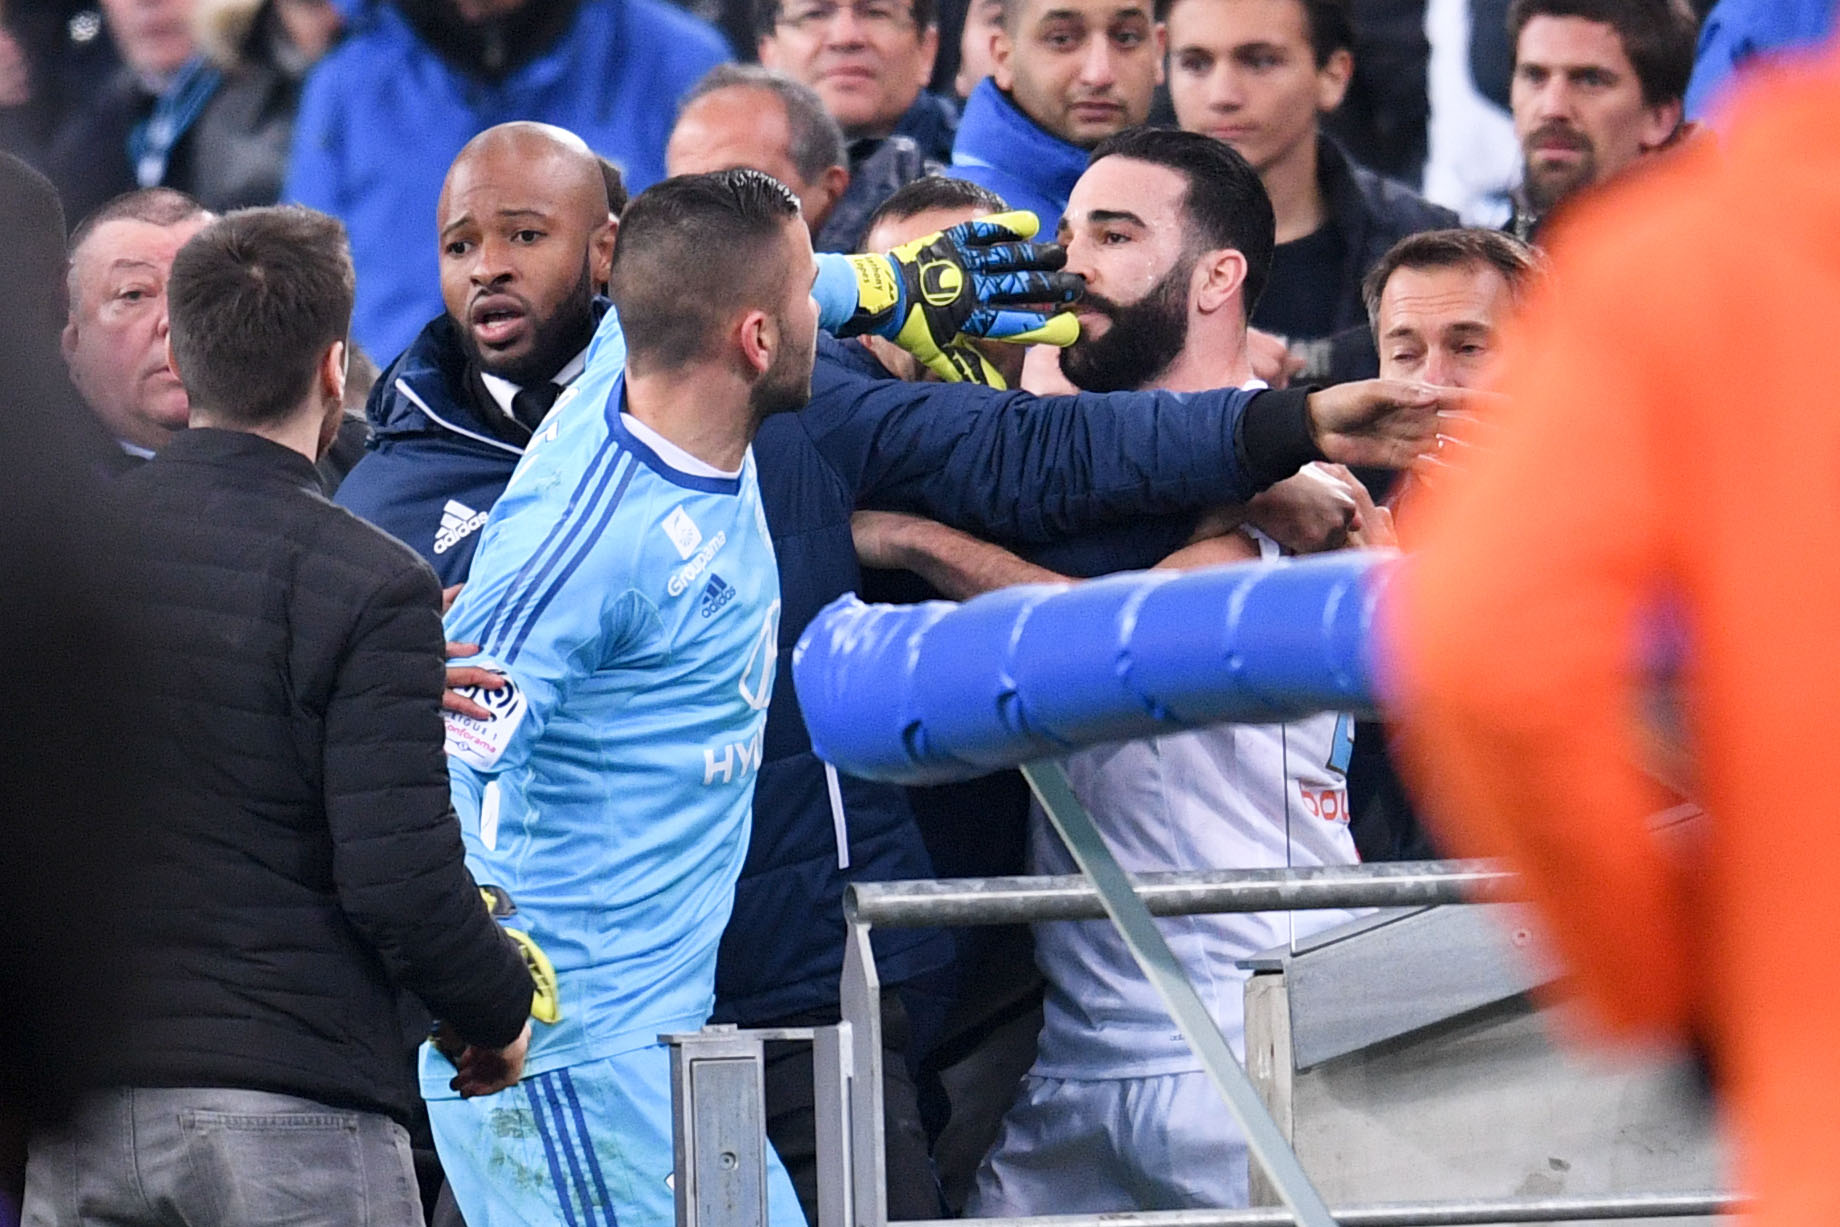 Football - Ligue 1 - Trois matches de suspension pour Anthony Lopes et Adil Rami